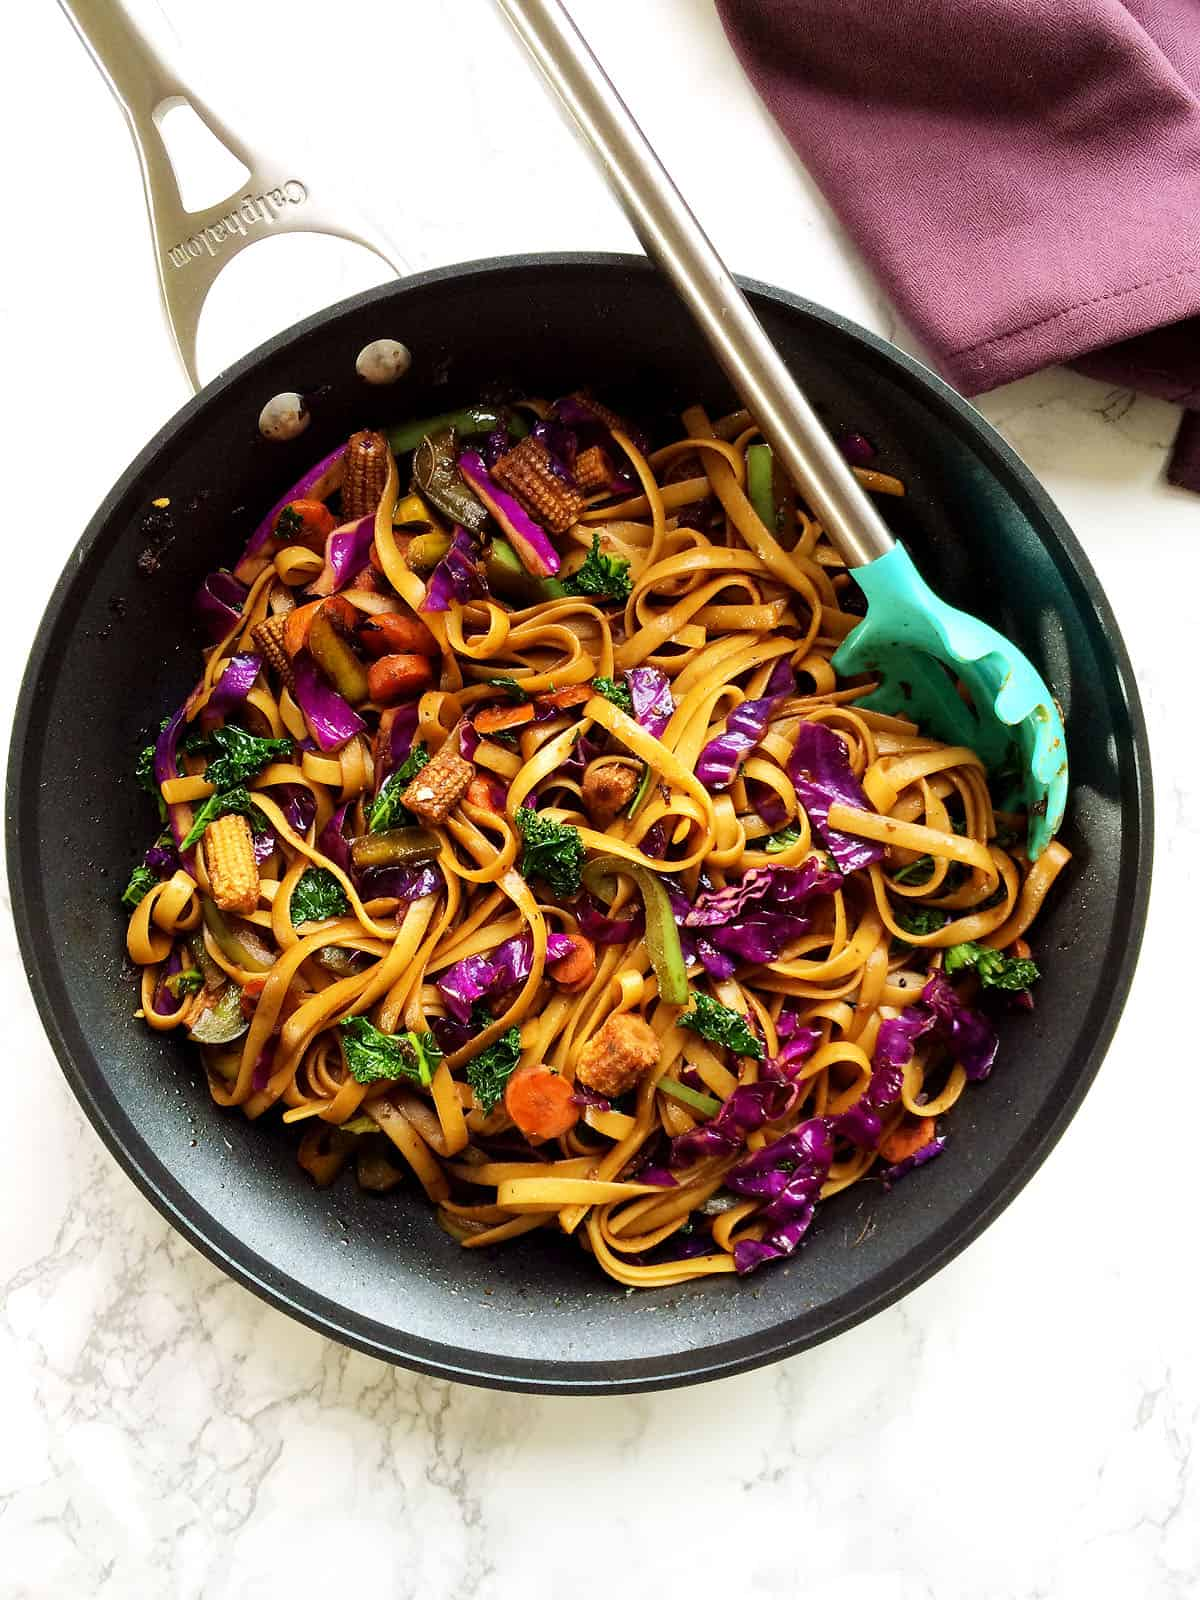 vegan mongolian noodles and veggies stir fry in spicy soy